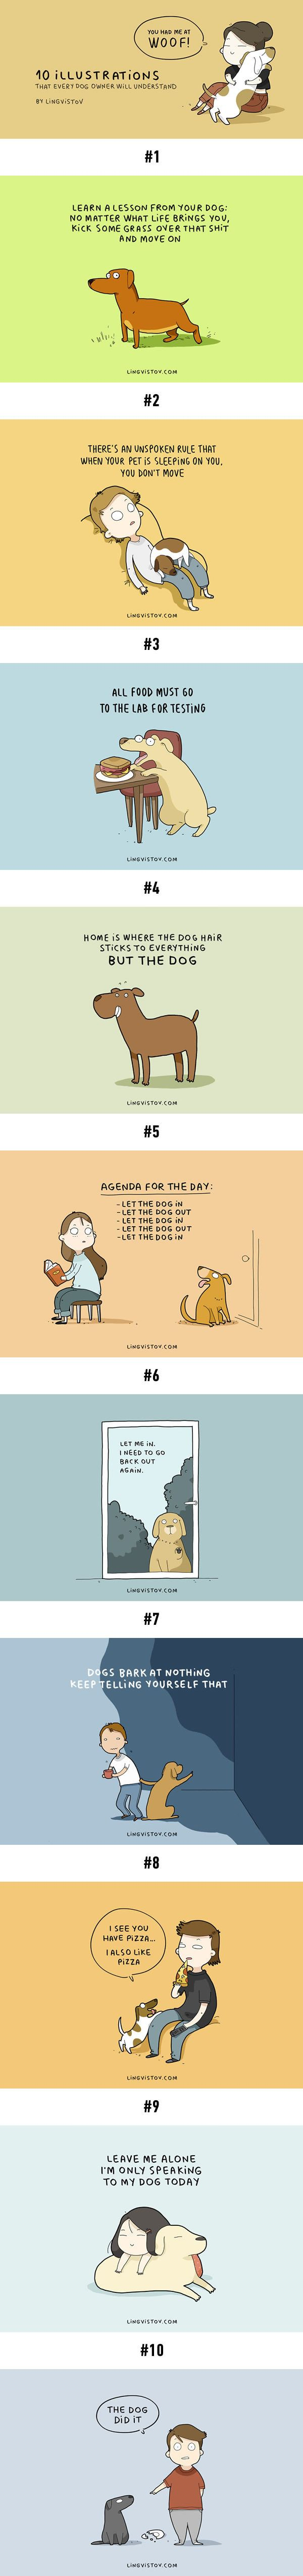 Illustrations Every Dog Owner Will Understand Dog Animal And - 10 funny illustrations every dog owner will relate to